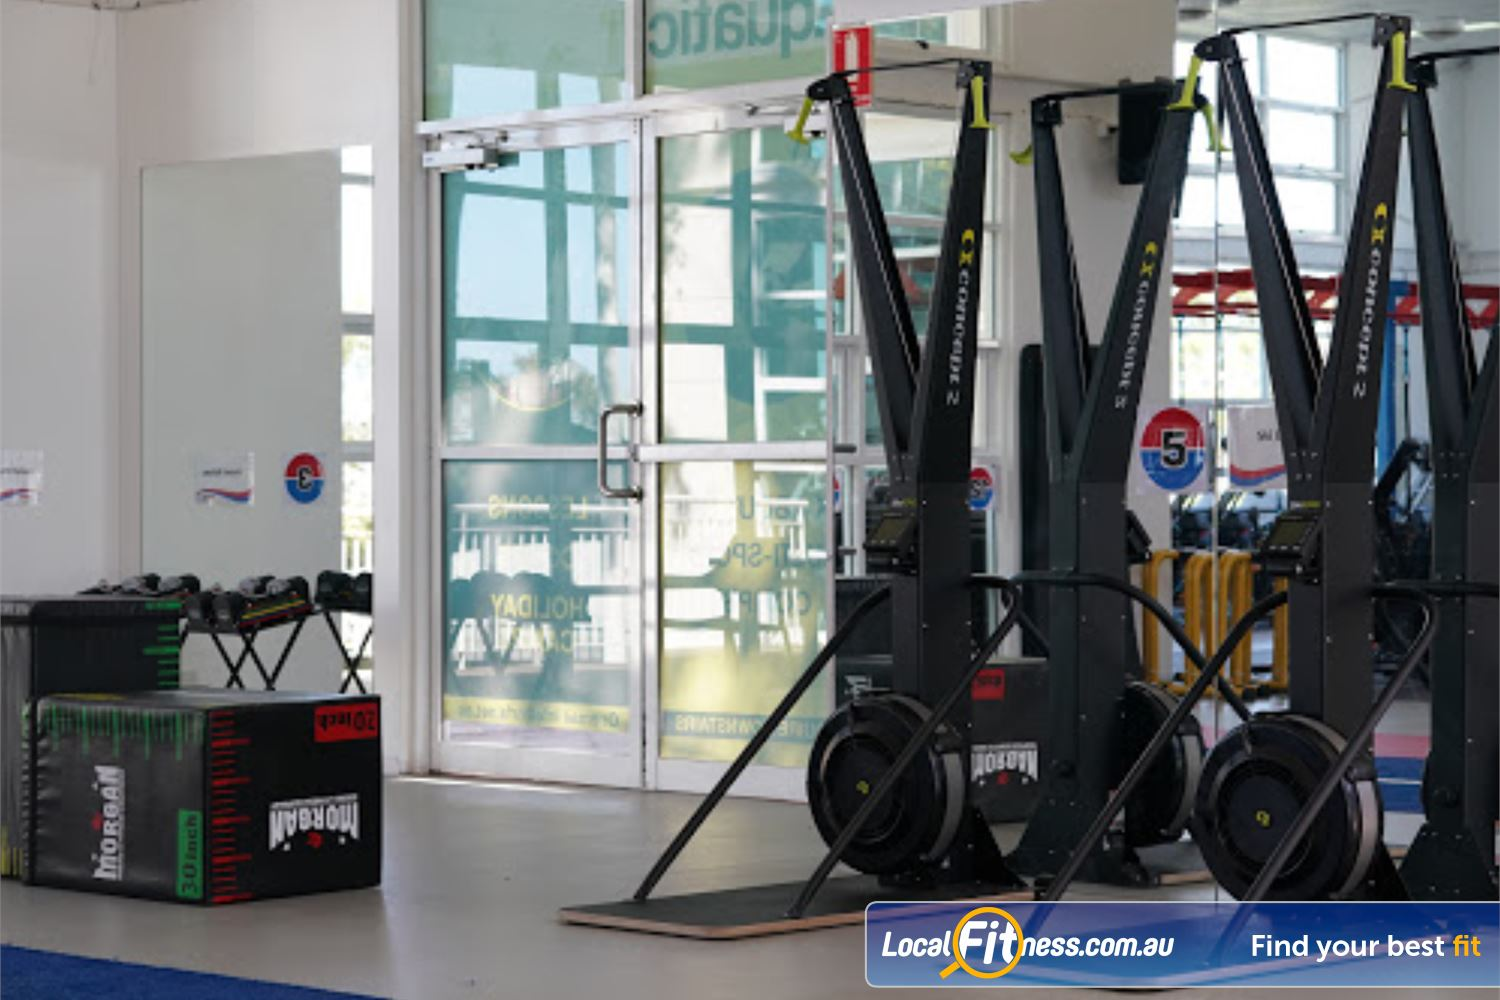 North Ryde Fitness & Aquatic Near Denistone Our HIIT classes provide strength and cardio in one session.